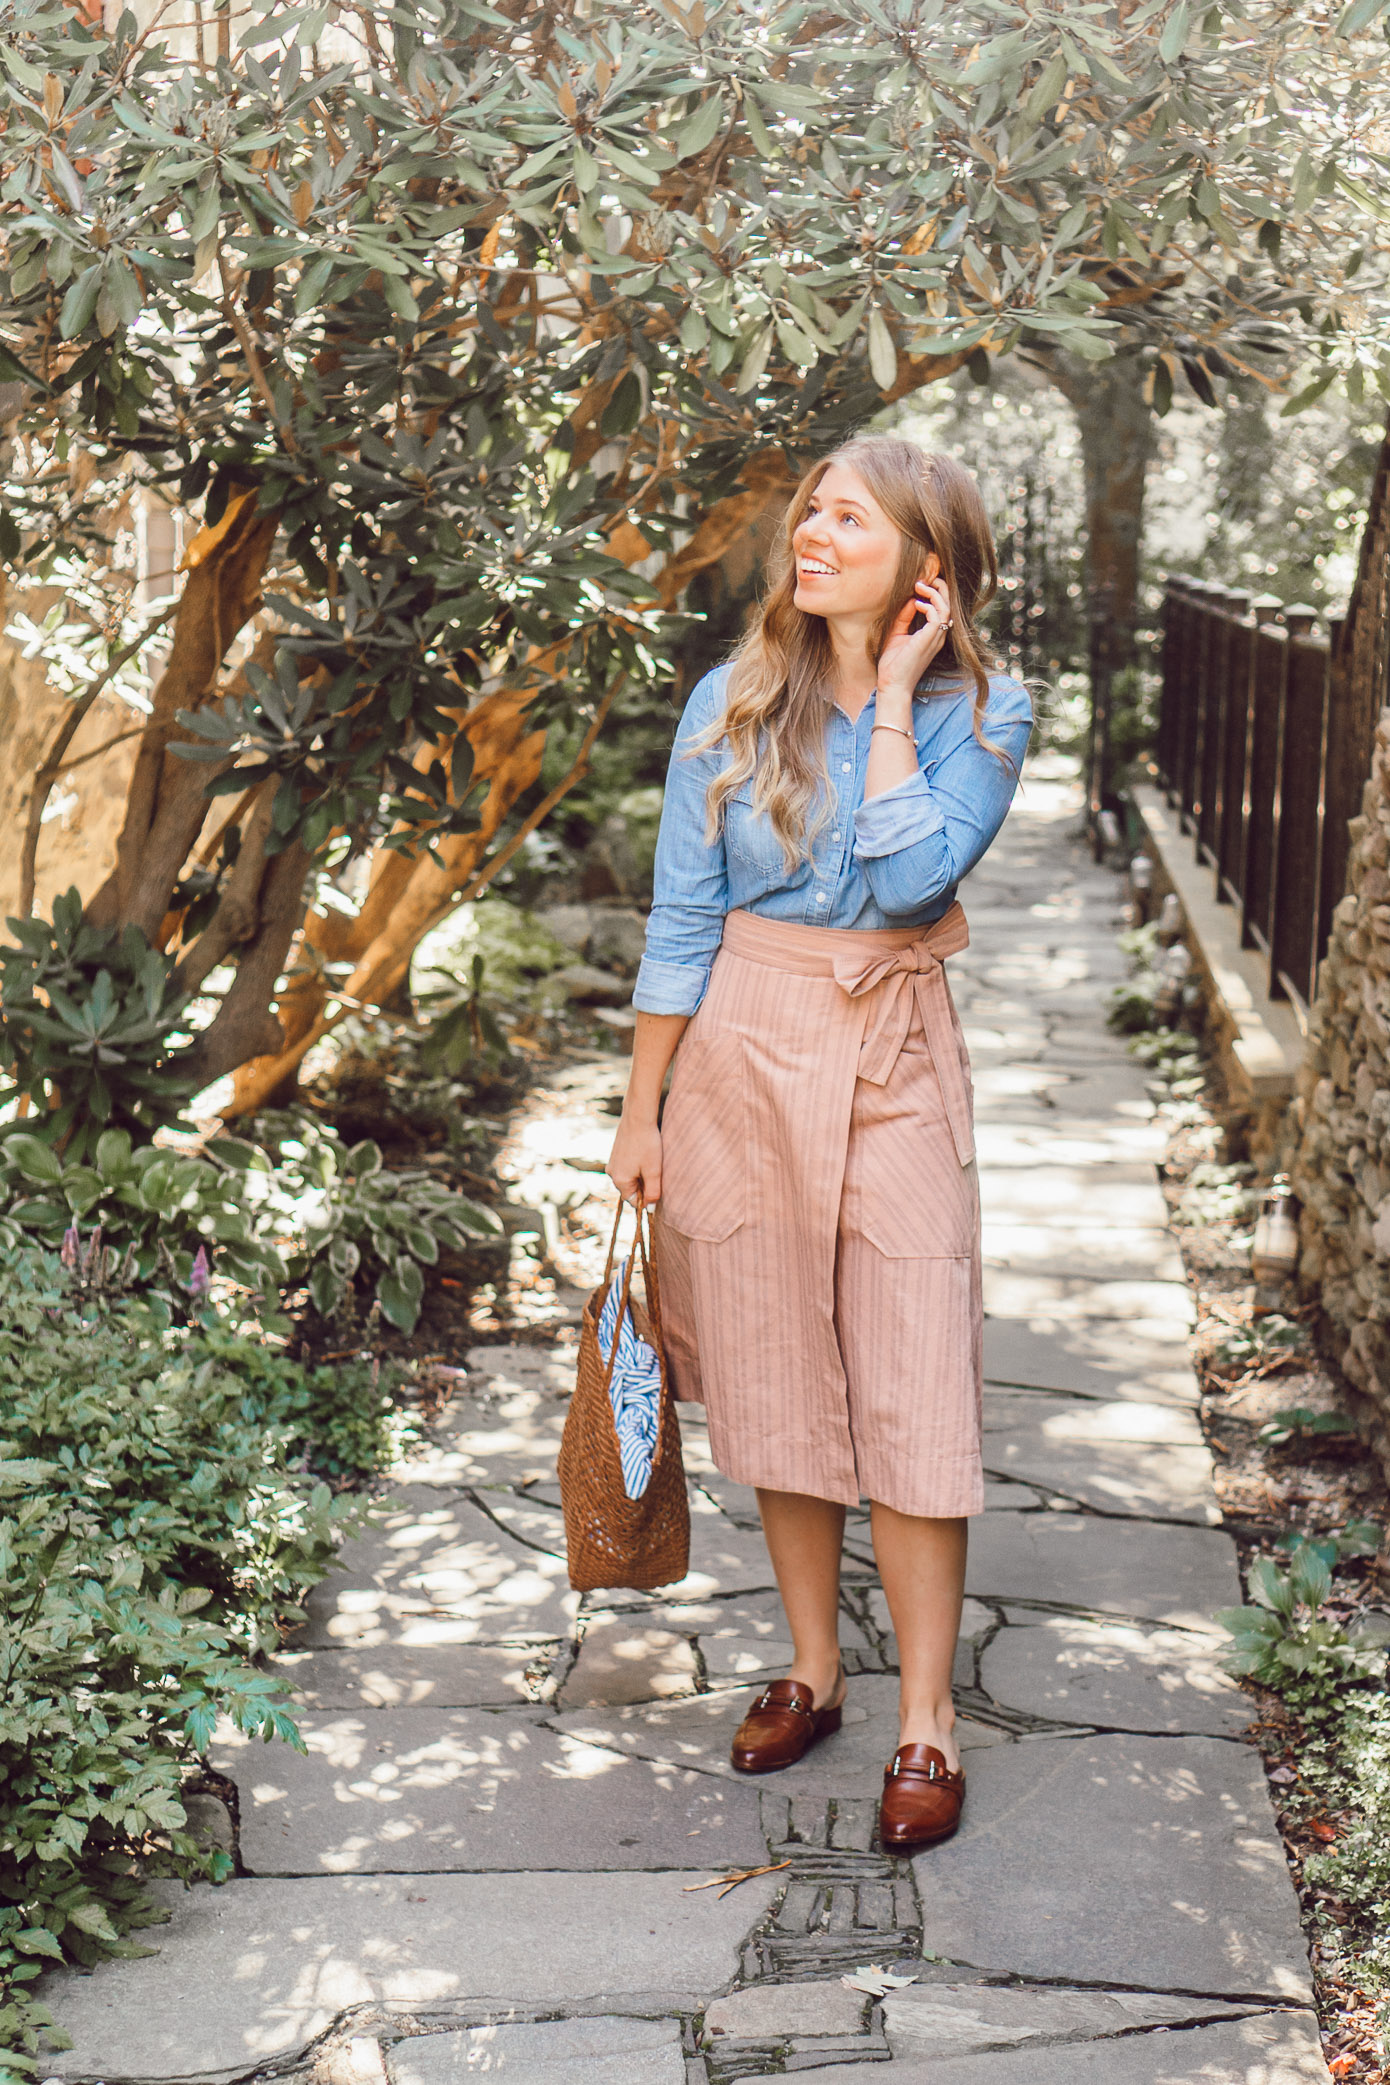 Fall Chambray Three Ways for Three Different Styles | How to Style a Chambray Shirt Three Ways for the Fall Season featured on Louella Reese